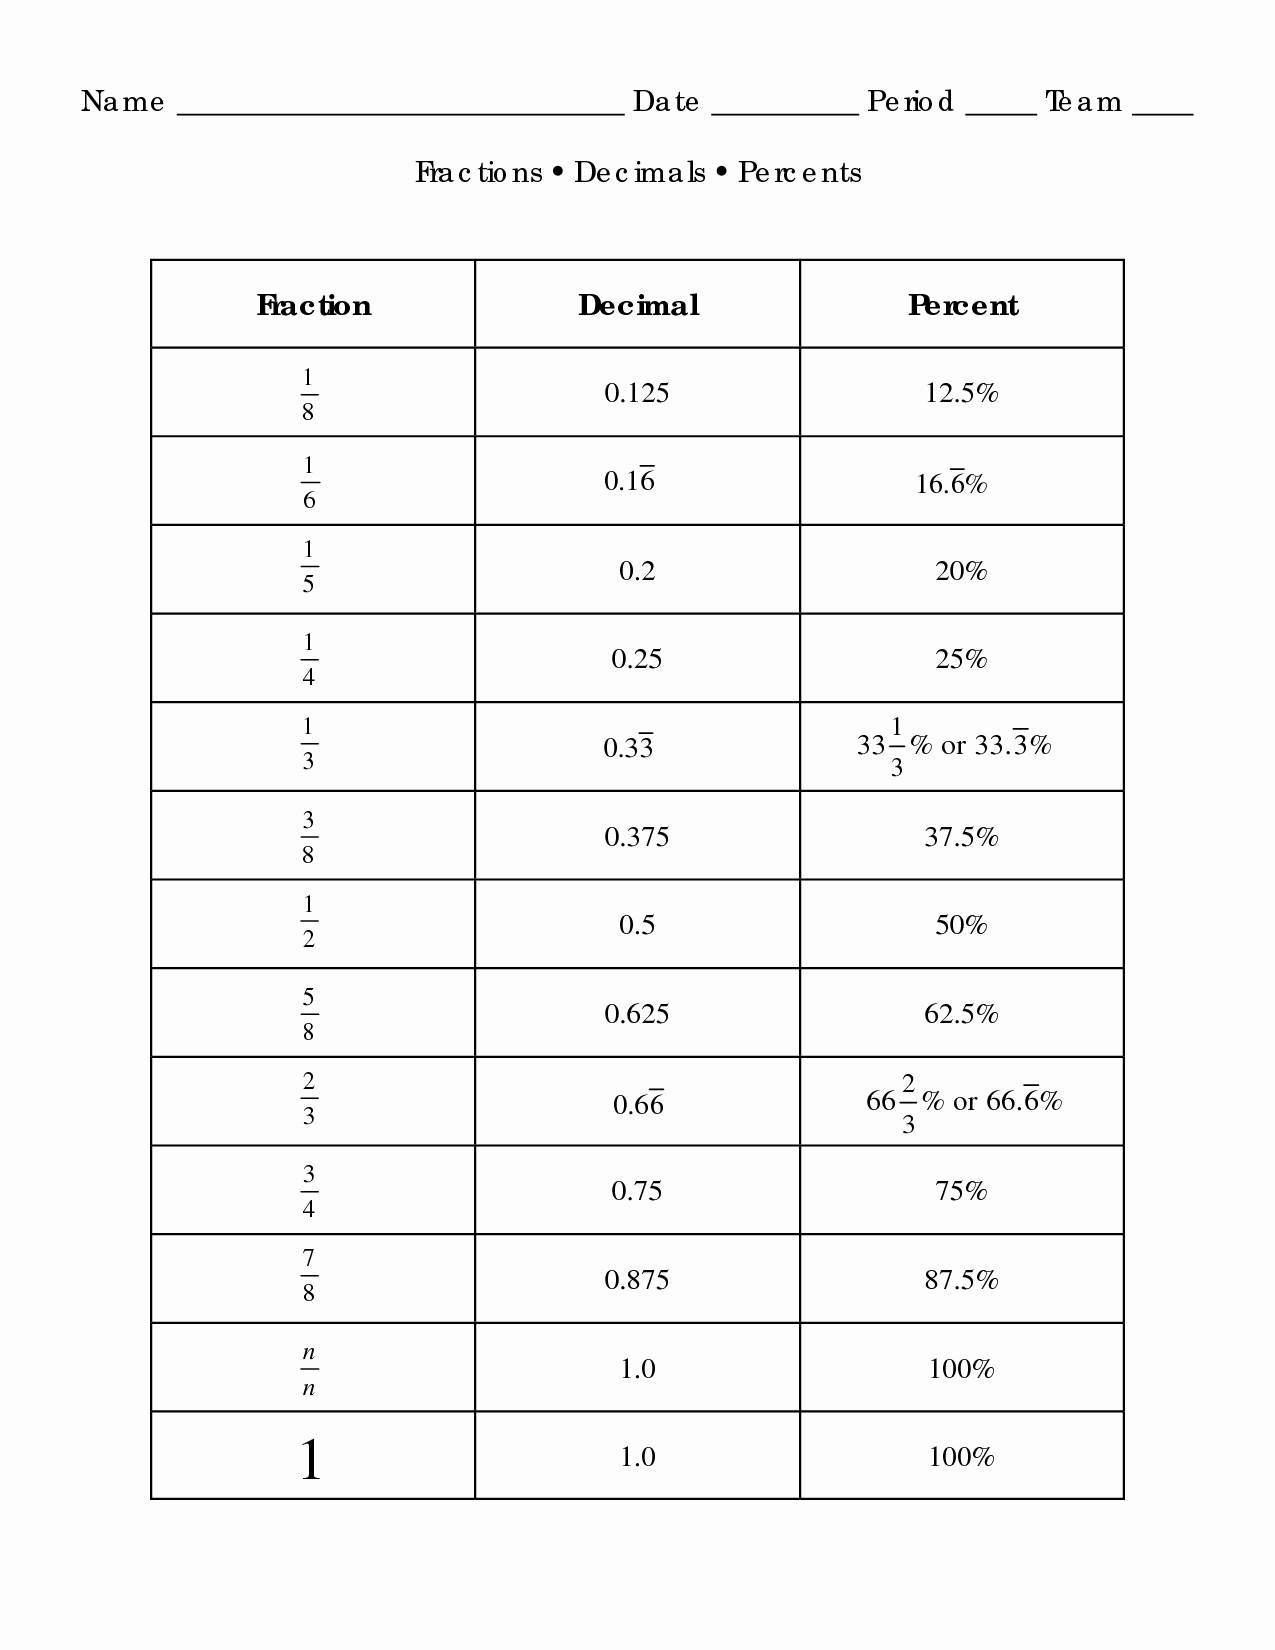 50 Fraction Decimal Percent Conversion Worksheet